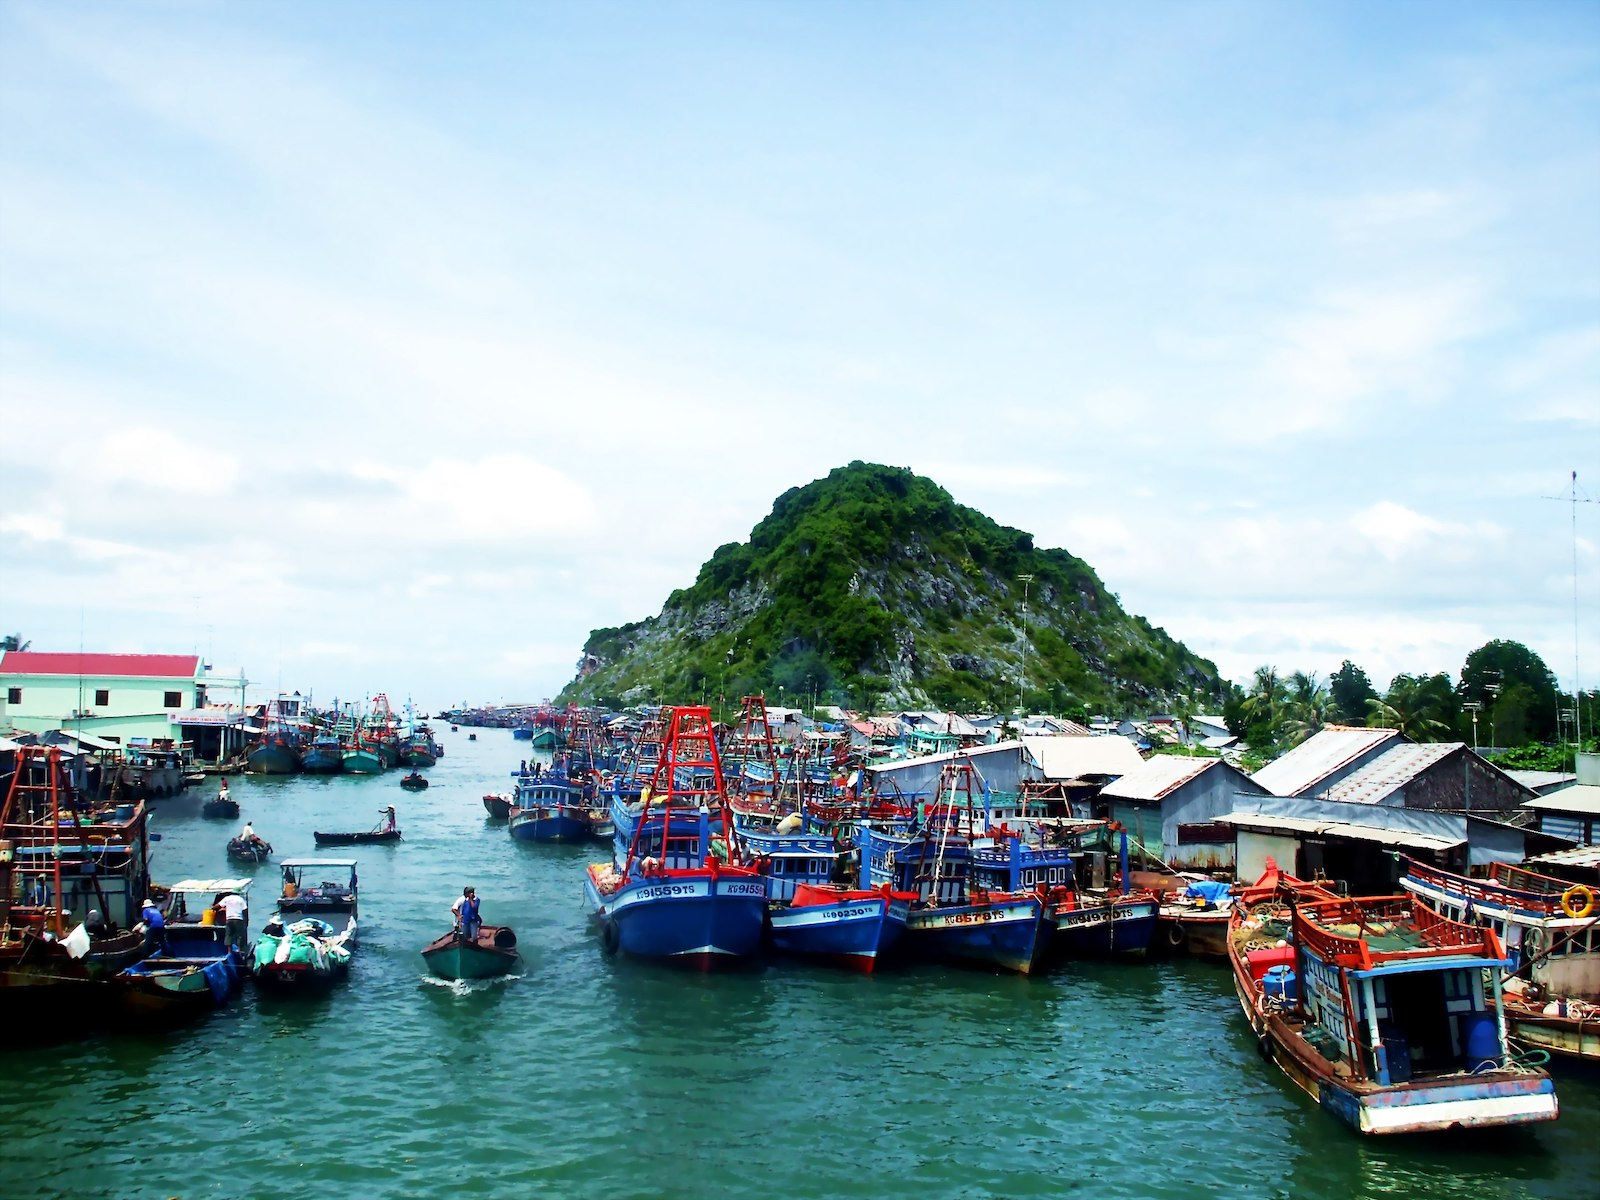 Image of boats in Kien Giang Province in Vietnam